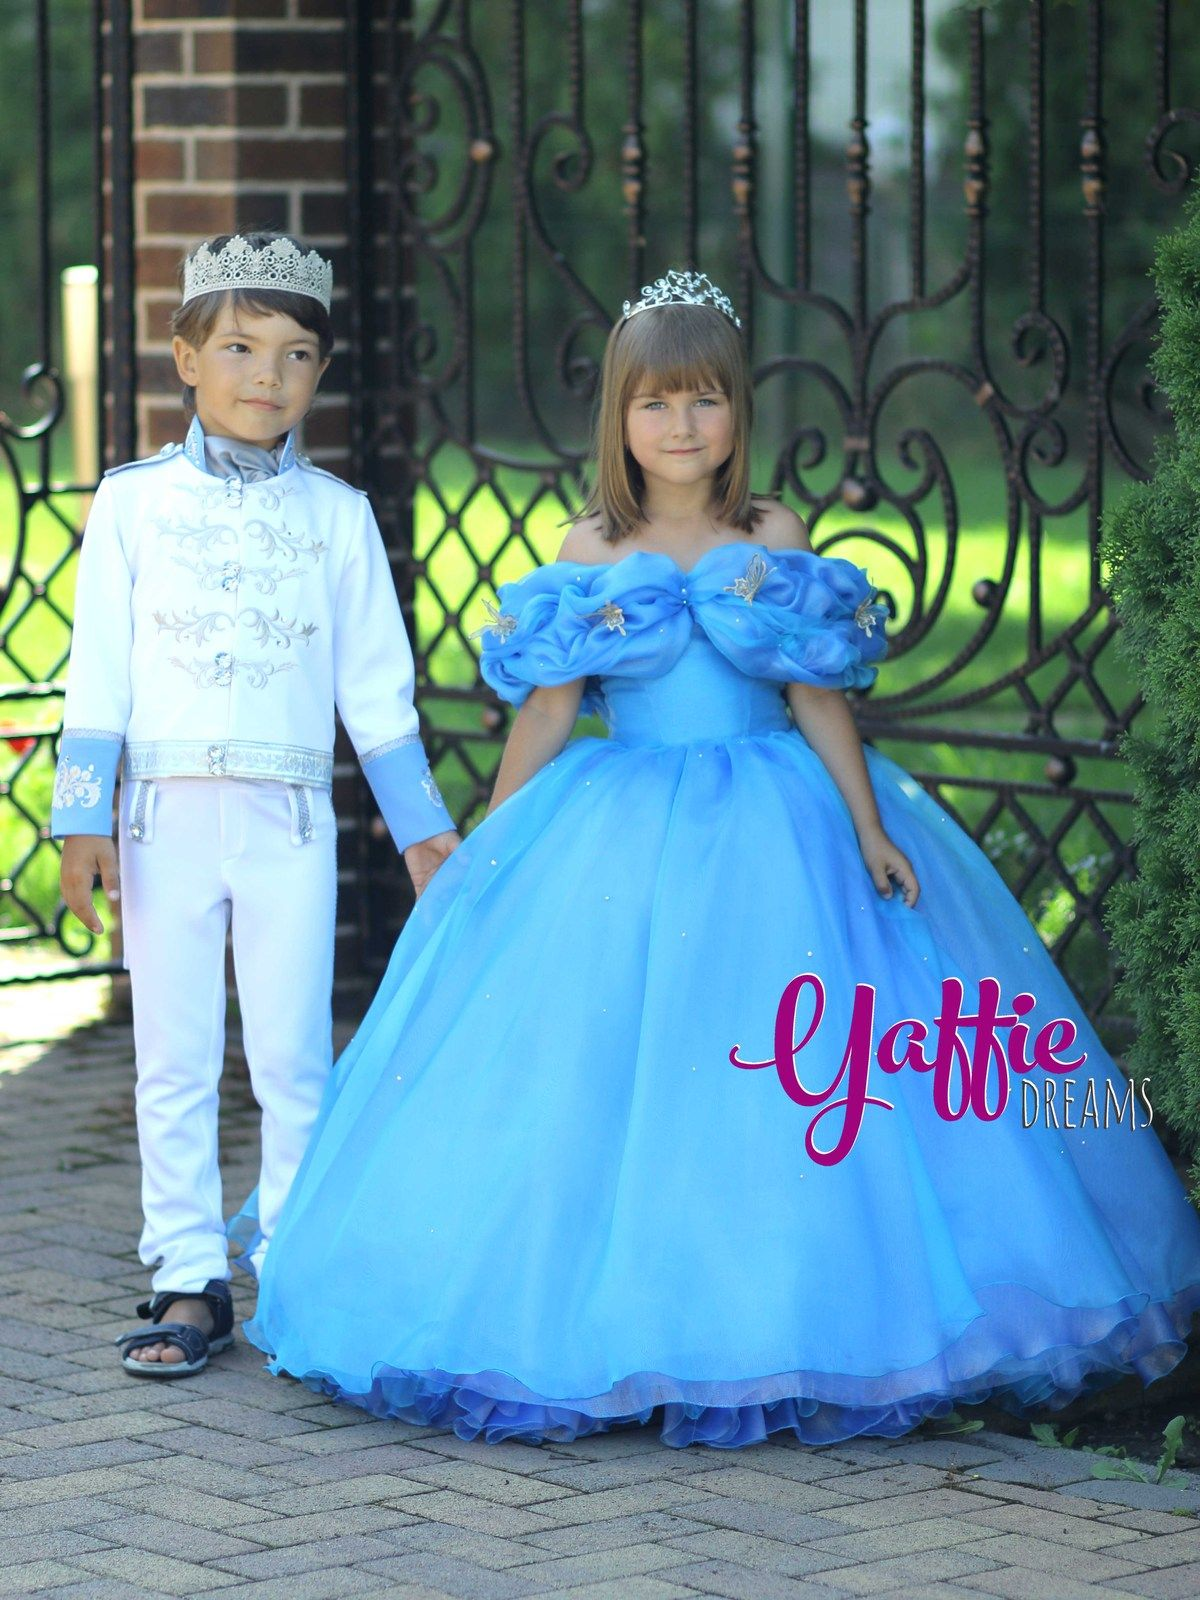 fb8d71c93 Cinderella 2015 movie dress Disney princess ball gown Halloween ...